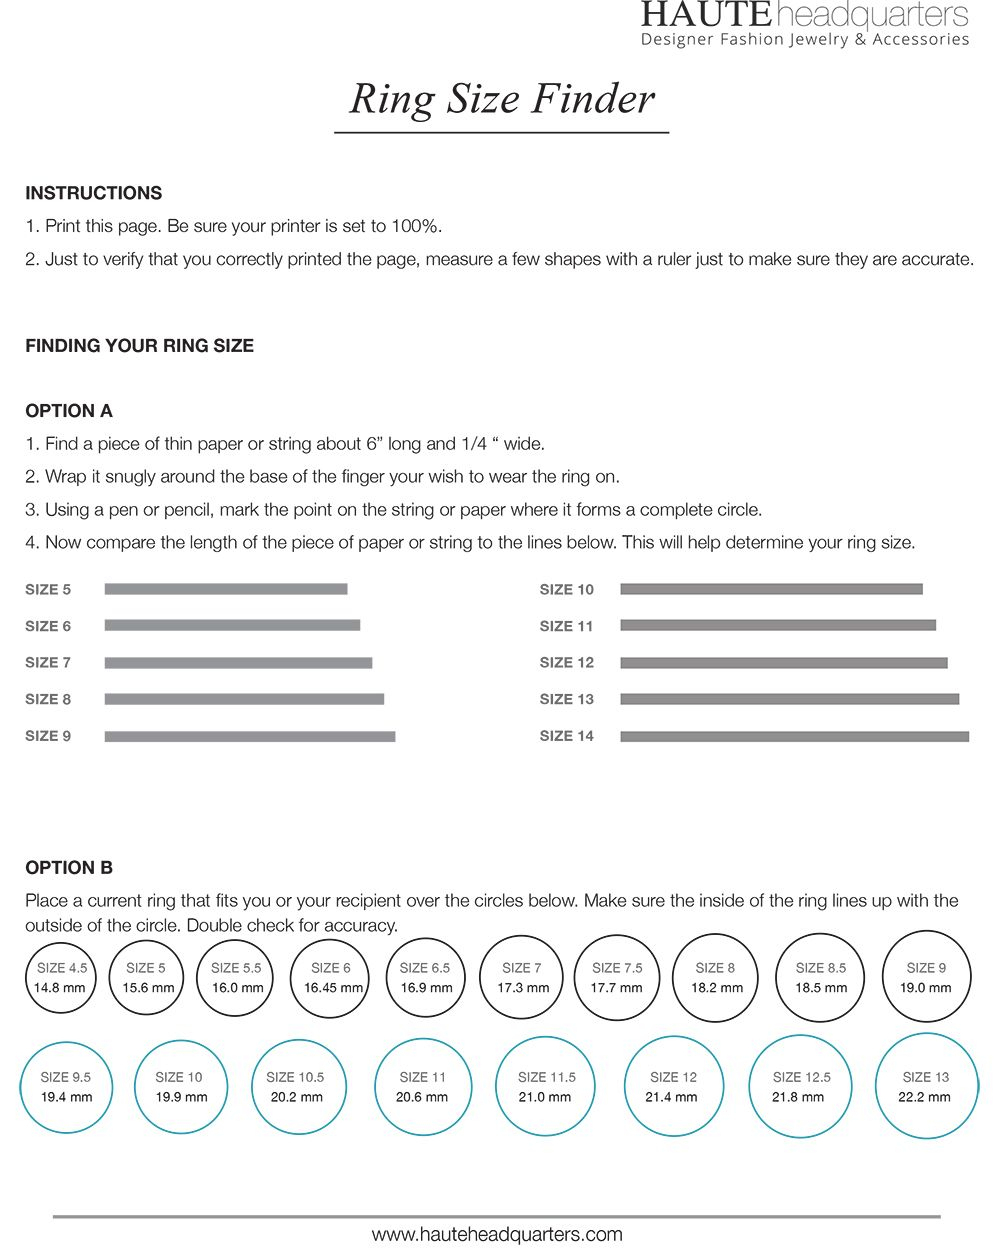 Printable Ring Size Guide From Hauteheadquarters | Designer